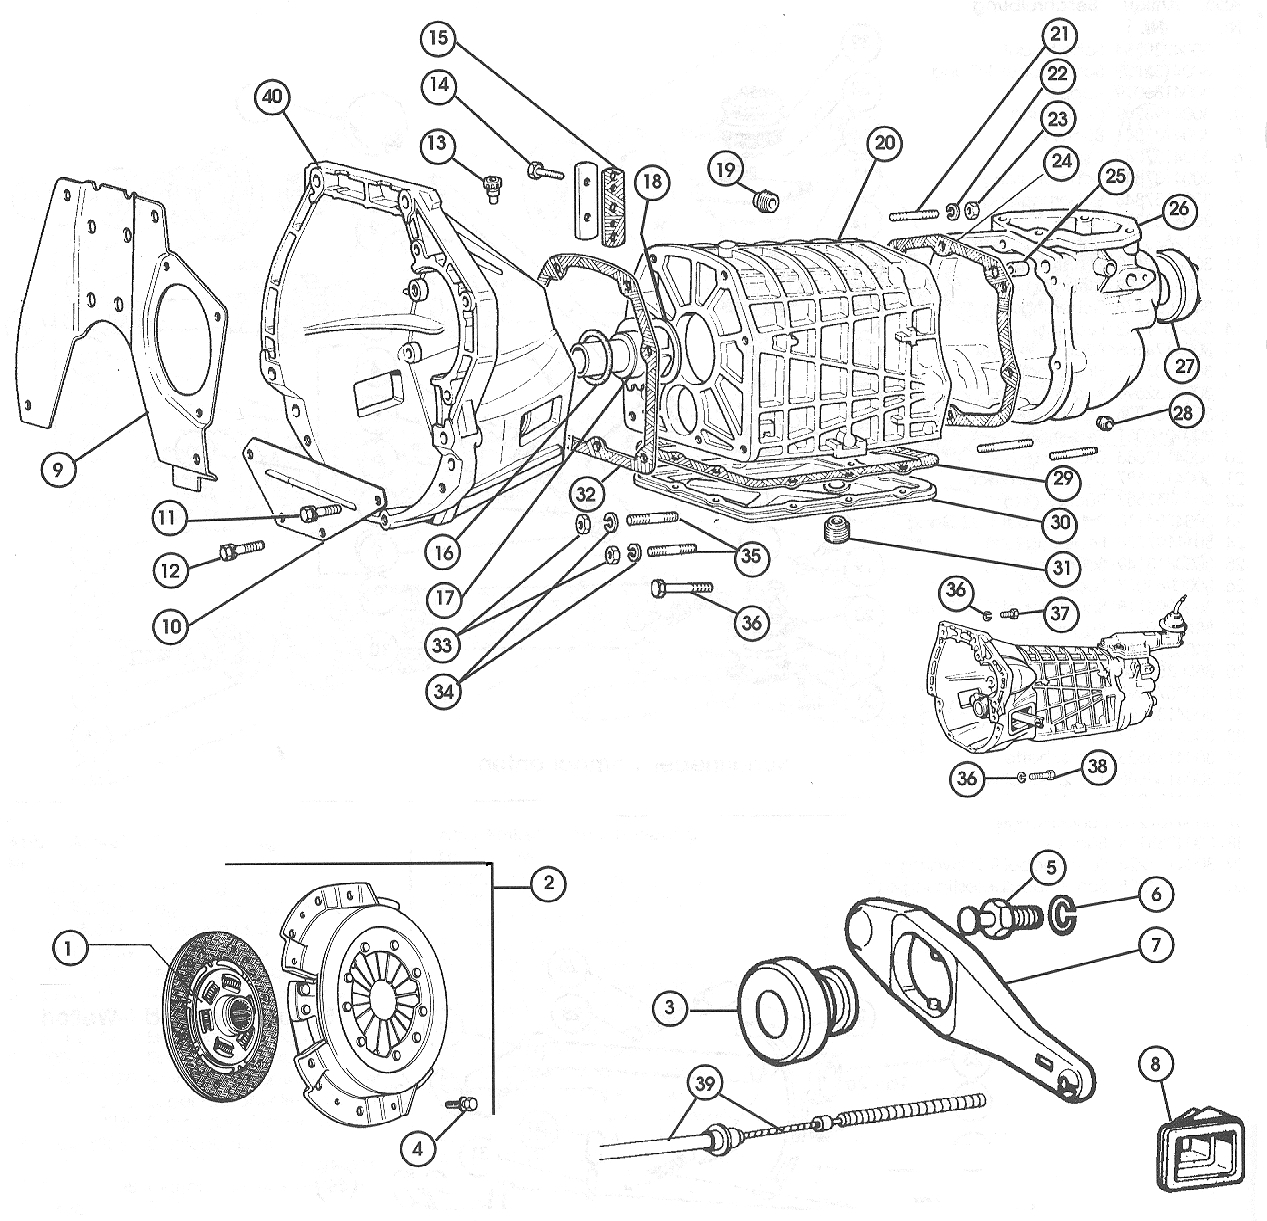 fiat 500 abarth engine diagram  abarth  auto wiring diagram